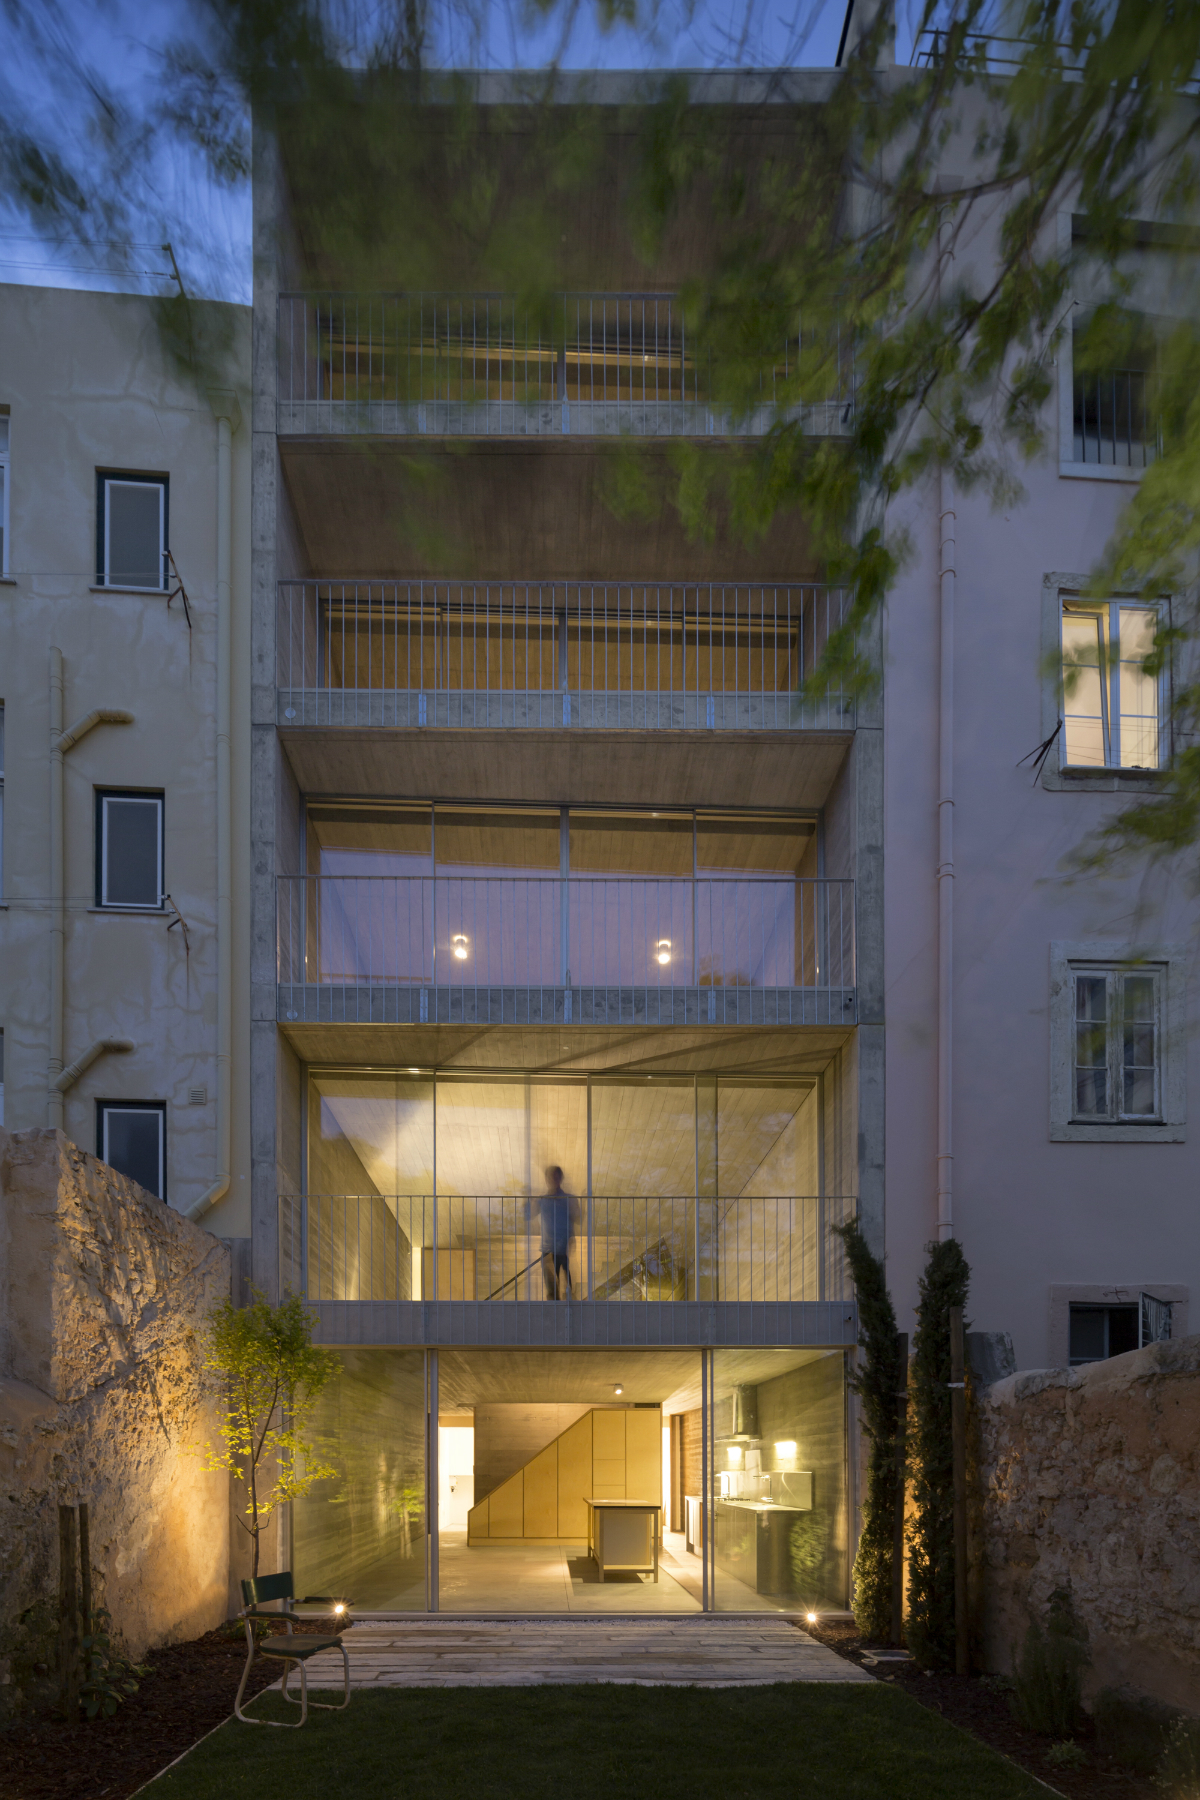 Discover The Minimalistic Architecture Of This Lisbon House minimalistic architecture Discover The Minimalistic Architecture Of This Lisbon House Discover The Minimalistic Architecture Of This Lisbon House 4 1